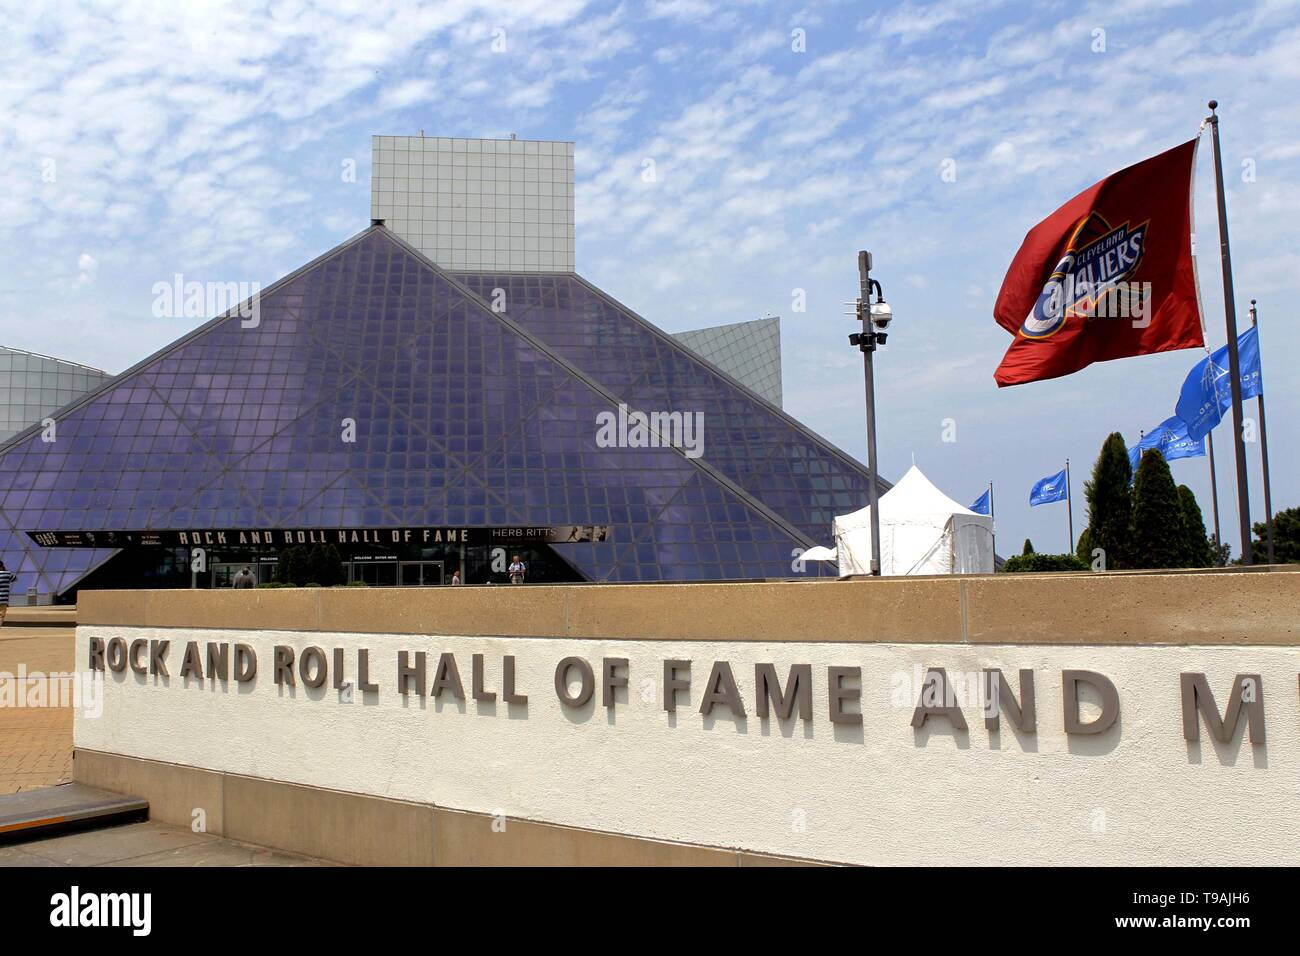 Beijing, China. 11th June, 2015. File photo taken on June 11, 2015 shows the view of the Rock and Roll Hall of Fame and Museum designed by world-renowned architect Ieoh Ming Pei in Cleveland, Ohio, the United States. Ieoh Ming Pei, commonly known as I.M. Pei, died Thursday at age 102. Pei was born in Guangzhou of China and moved to the United States in 1935. He won a wide variety of prizes and awards in the field of architecture. Credit: Song Qiong/Xinhua/Alamy Live News - Stock Image